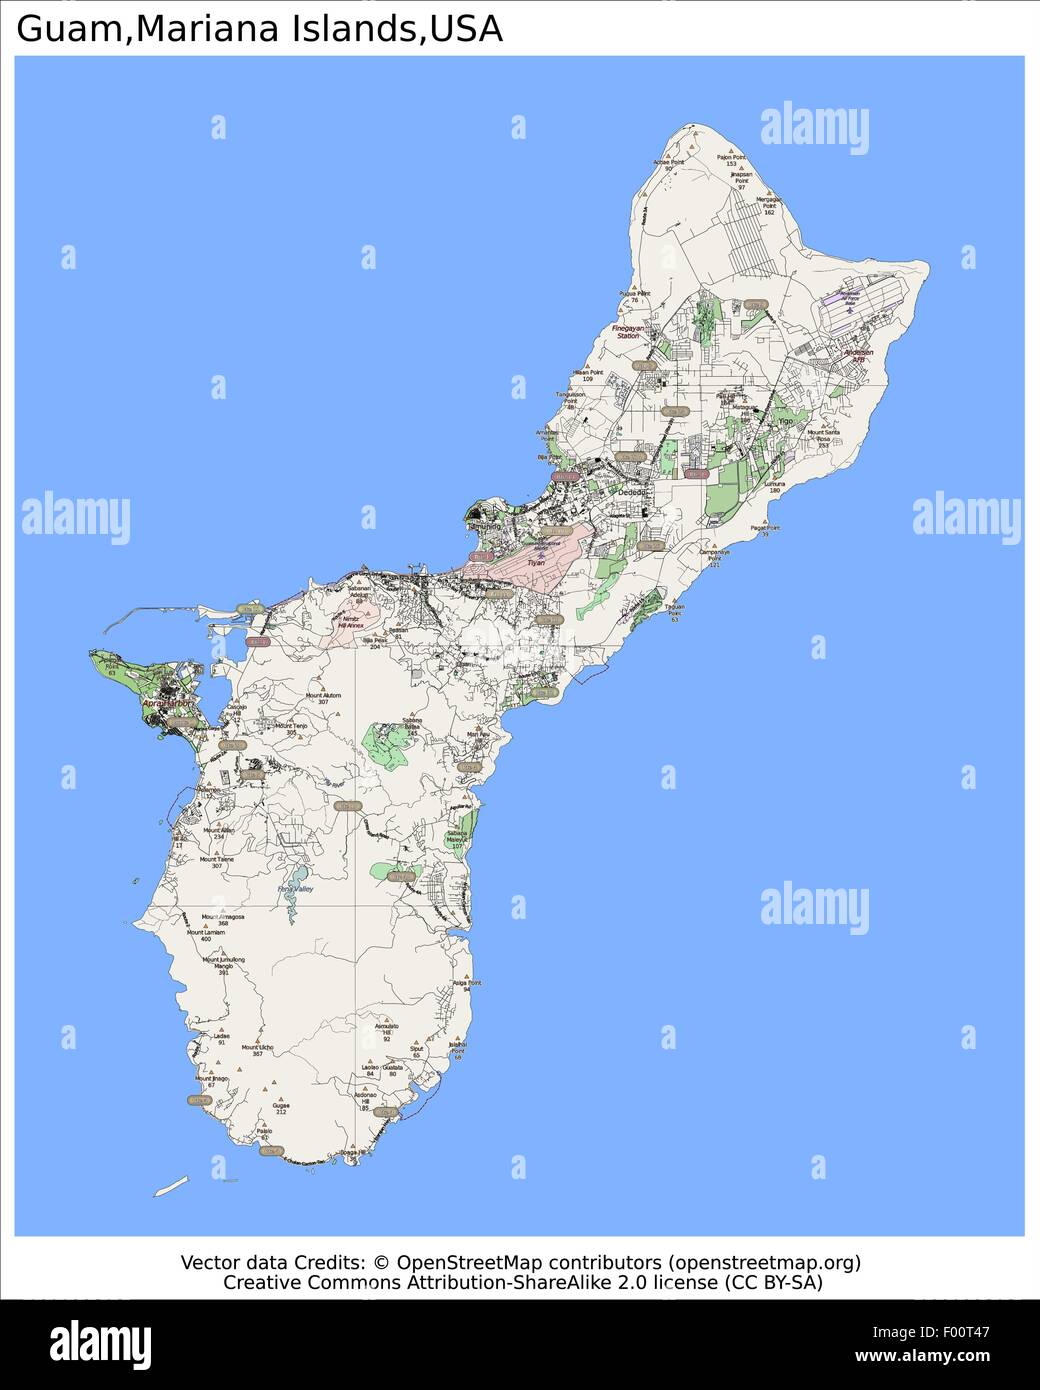 Guam Mariana Islands USA Country City Island State Location Map - Guam location